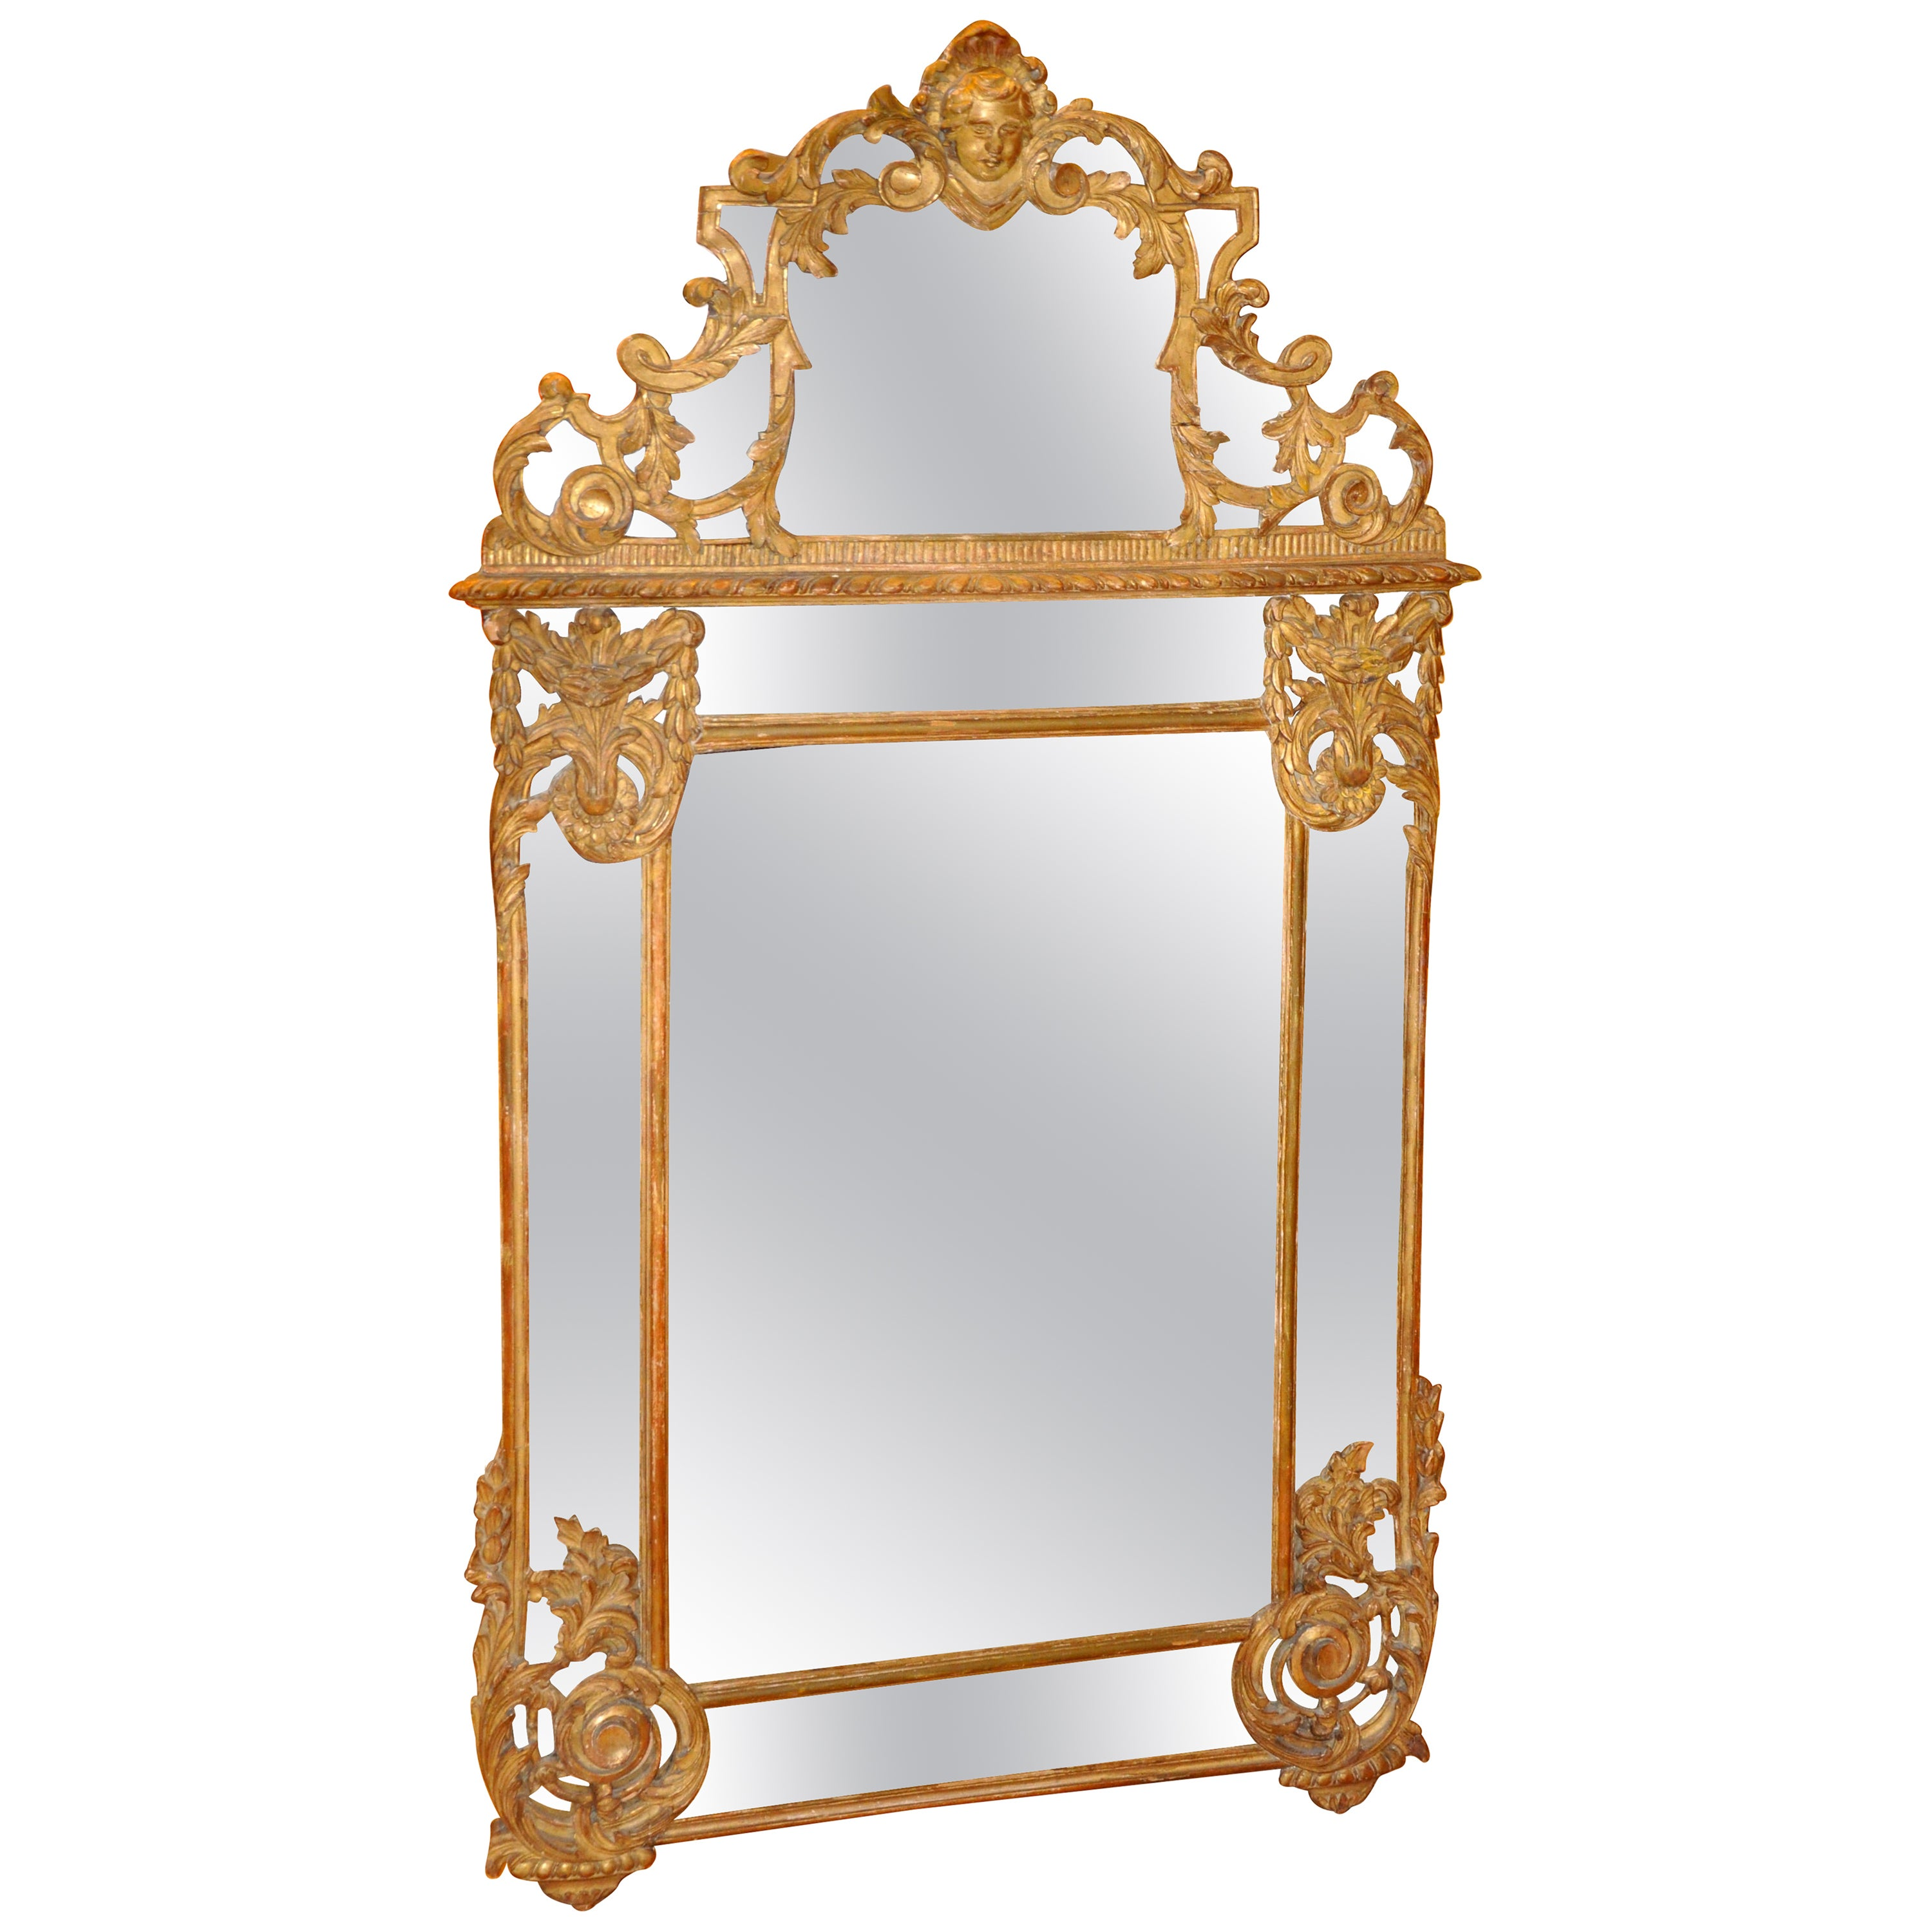 19th Century French Giltwood Regence Style Mirror